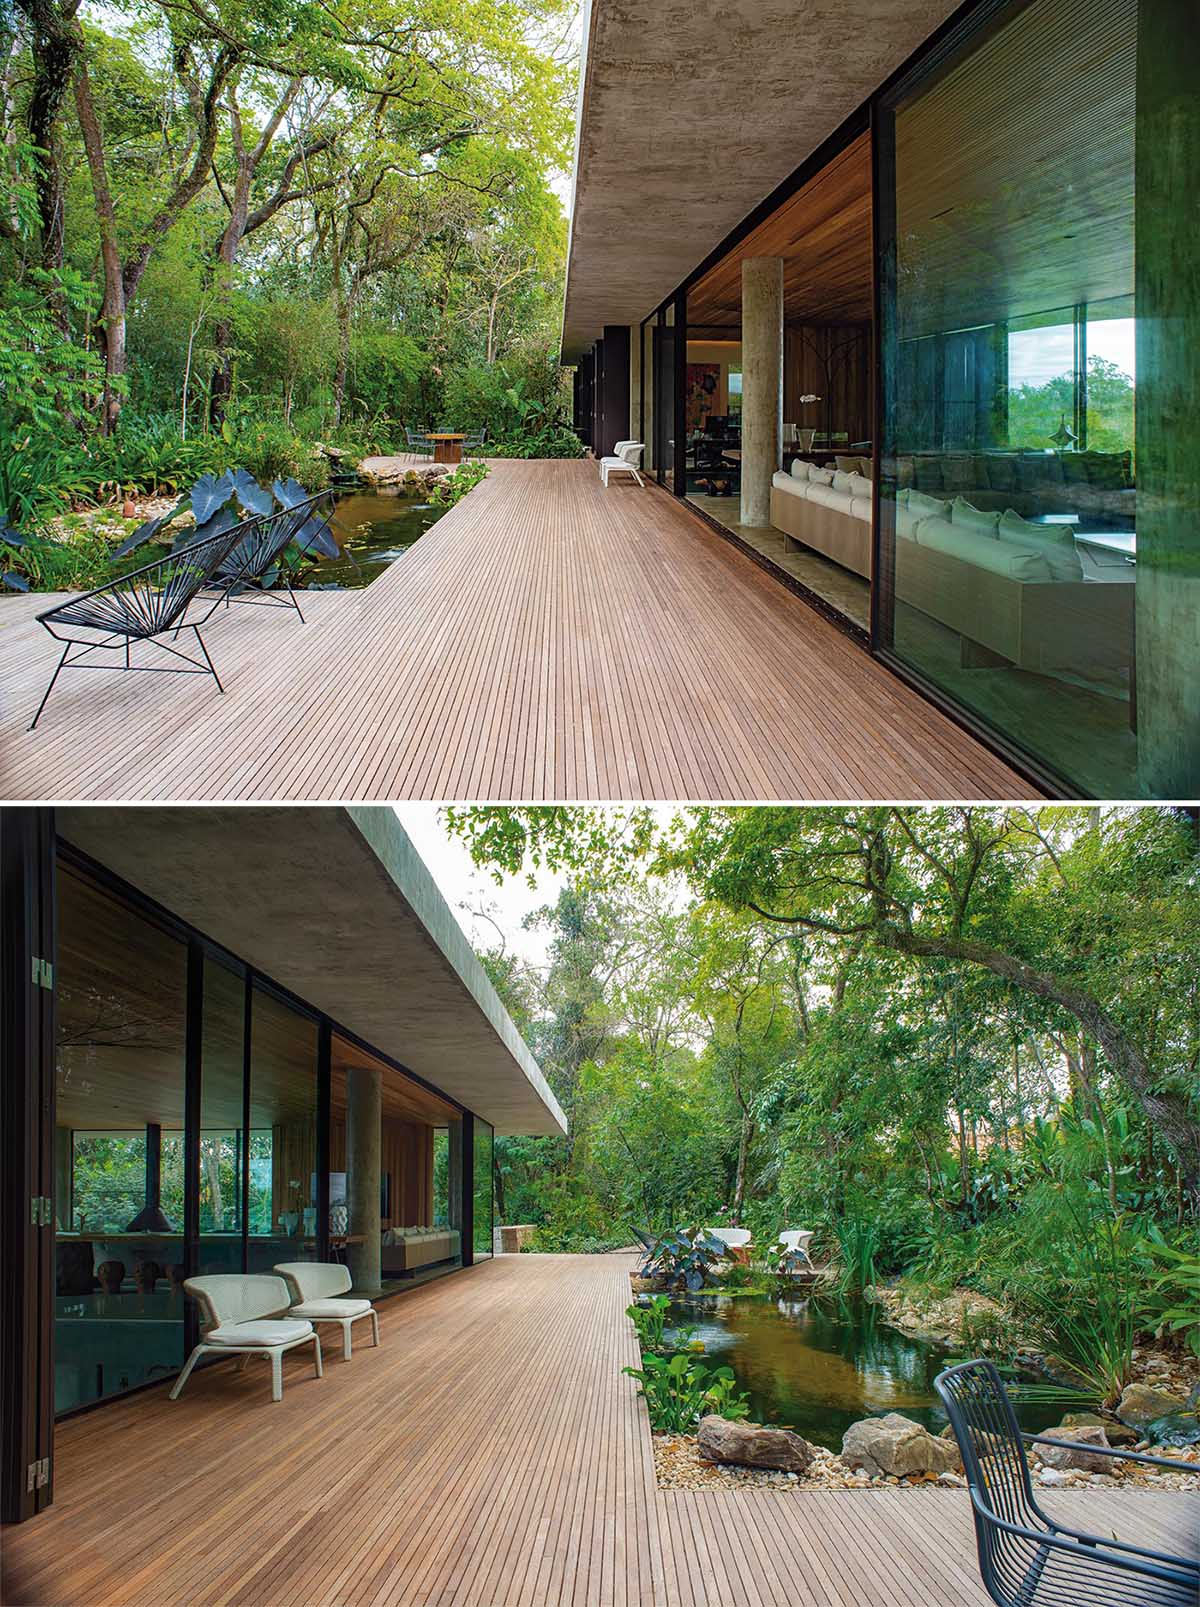 A modern concrete home with a wood deck that wraps around a natural water feature and tree views.